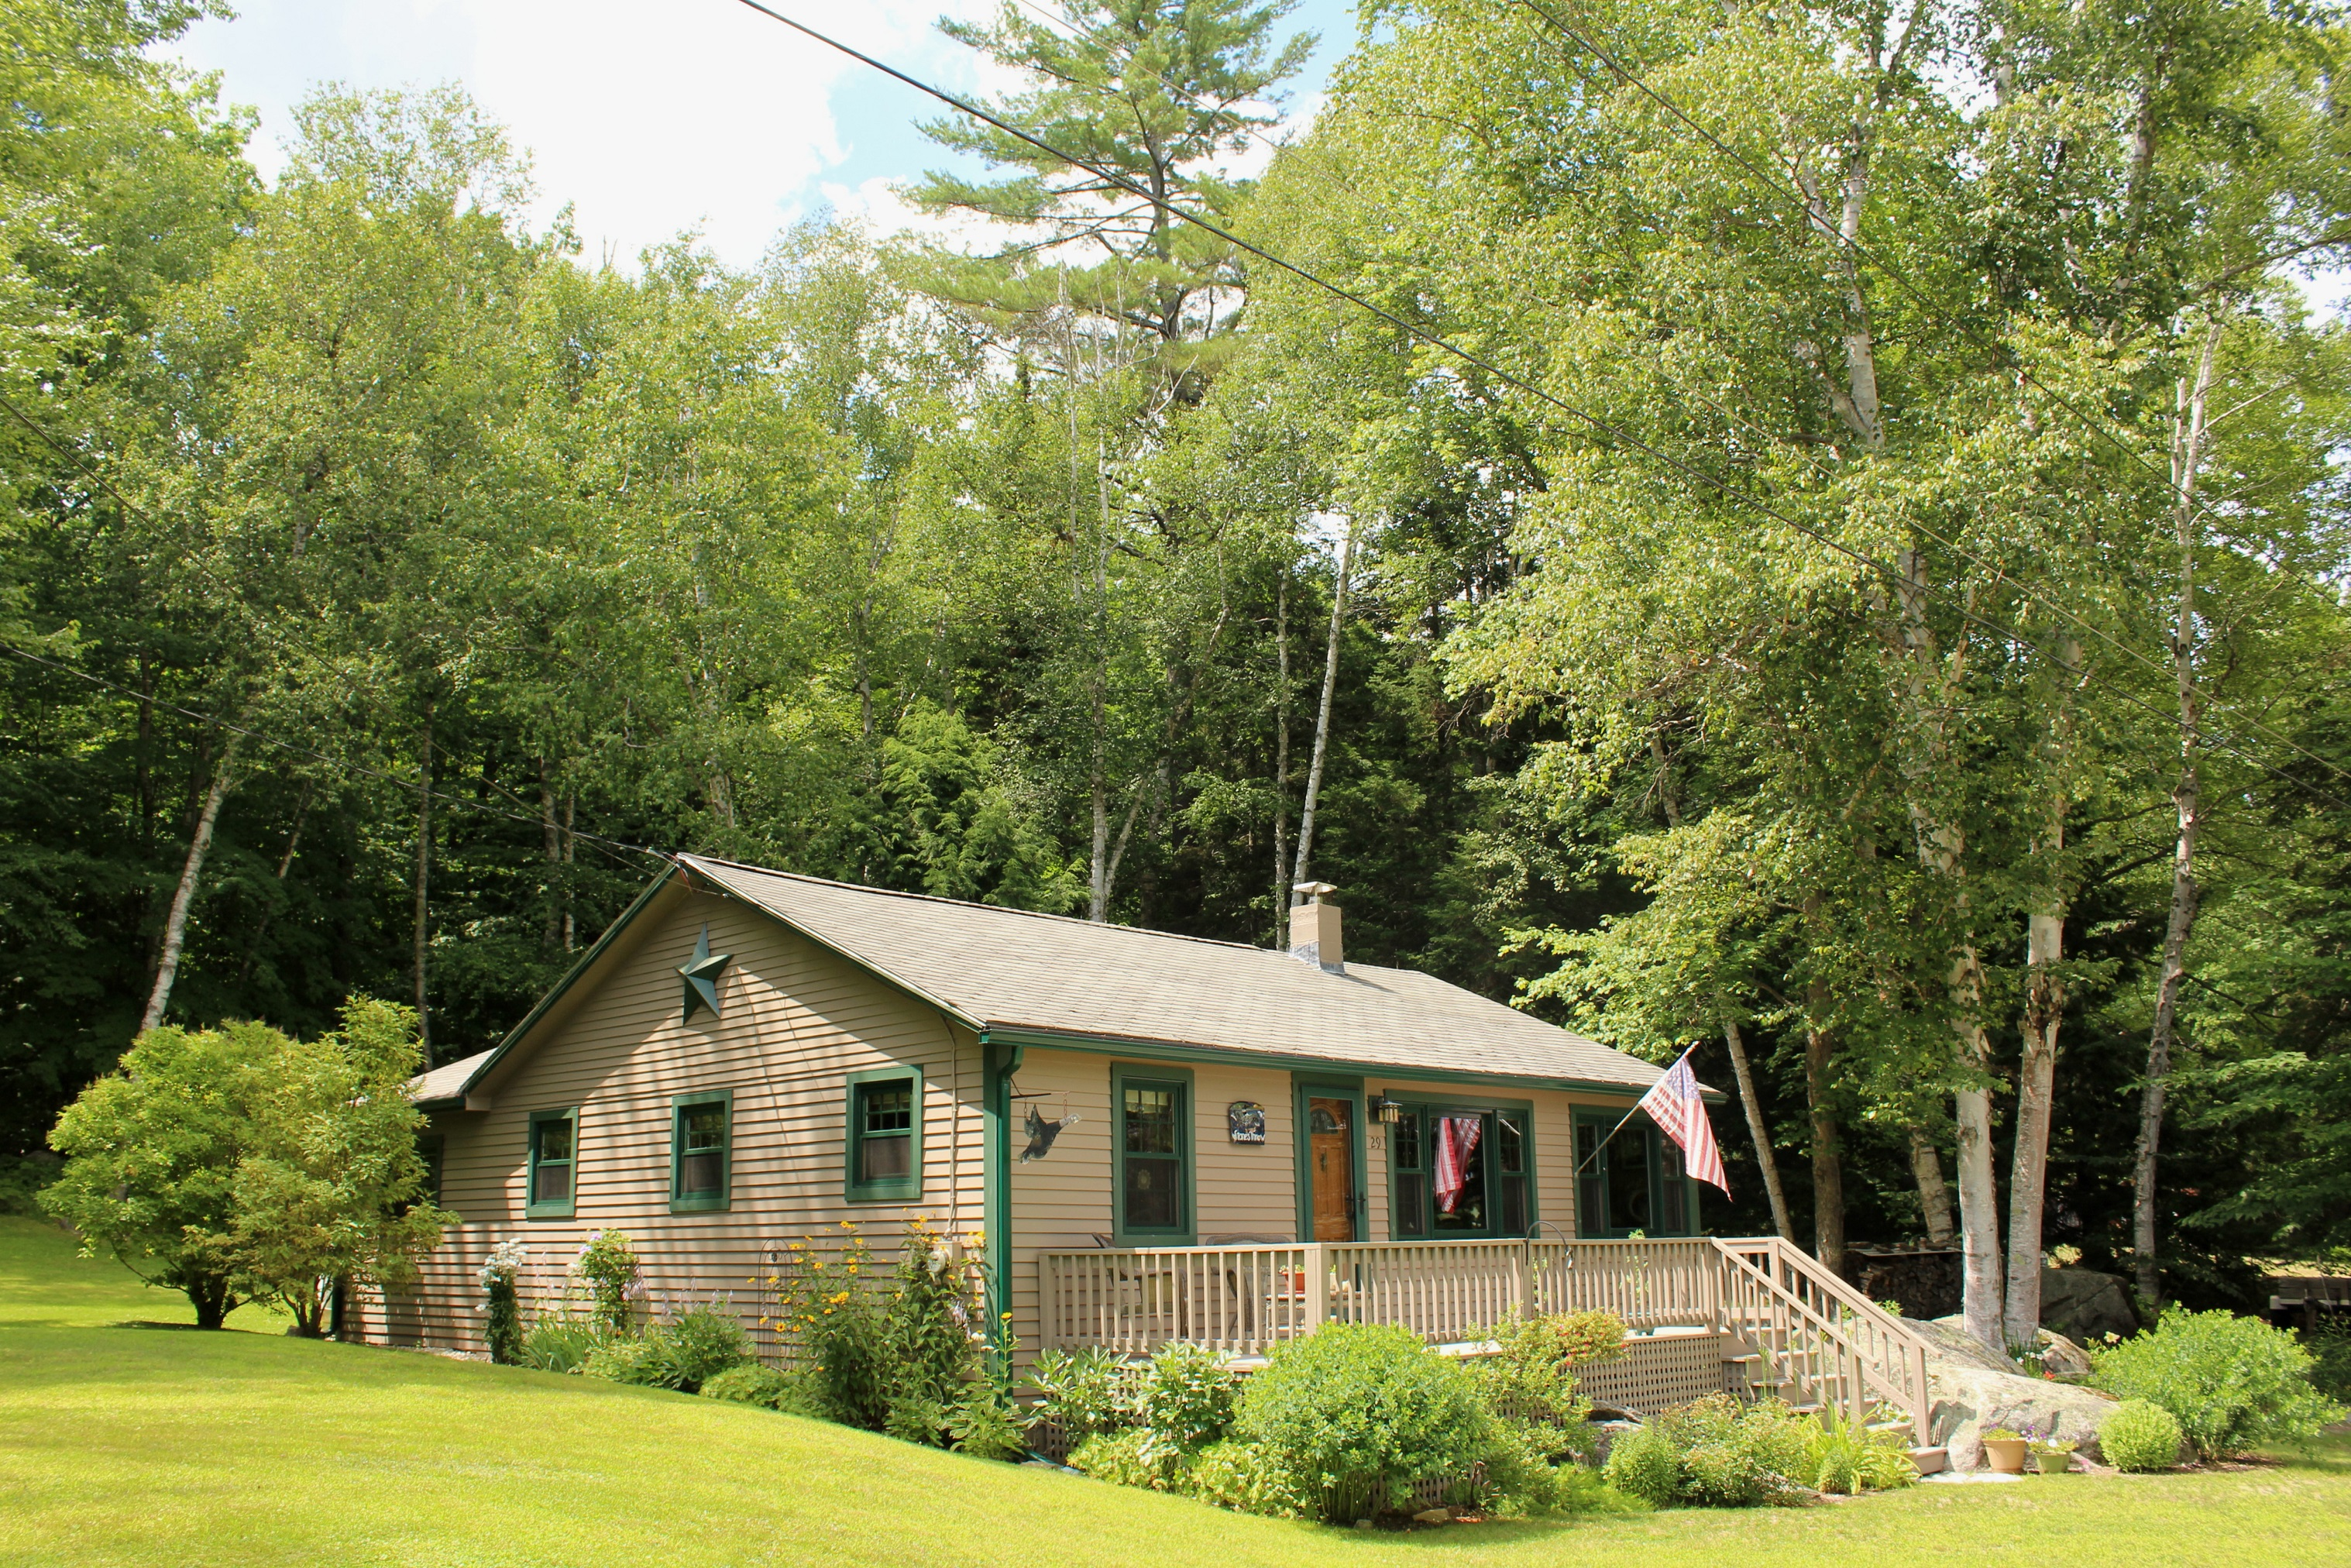 29 W Shore Rd, Canaan, NH 03741